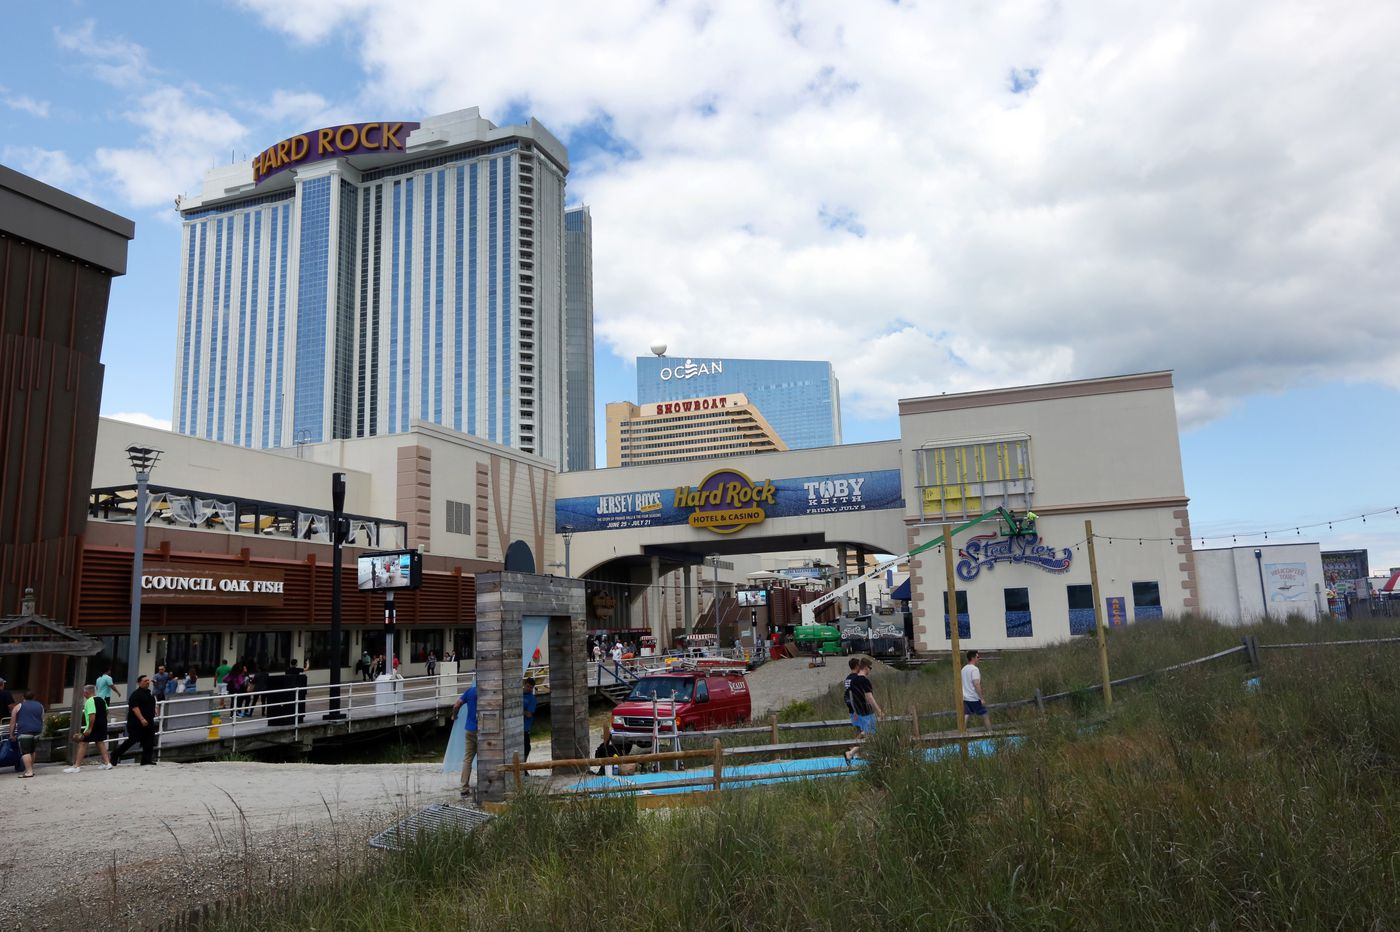 Atlantic City casinos GGR